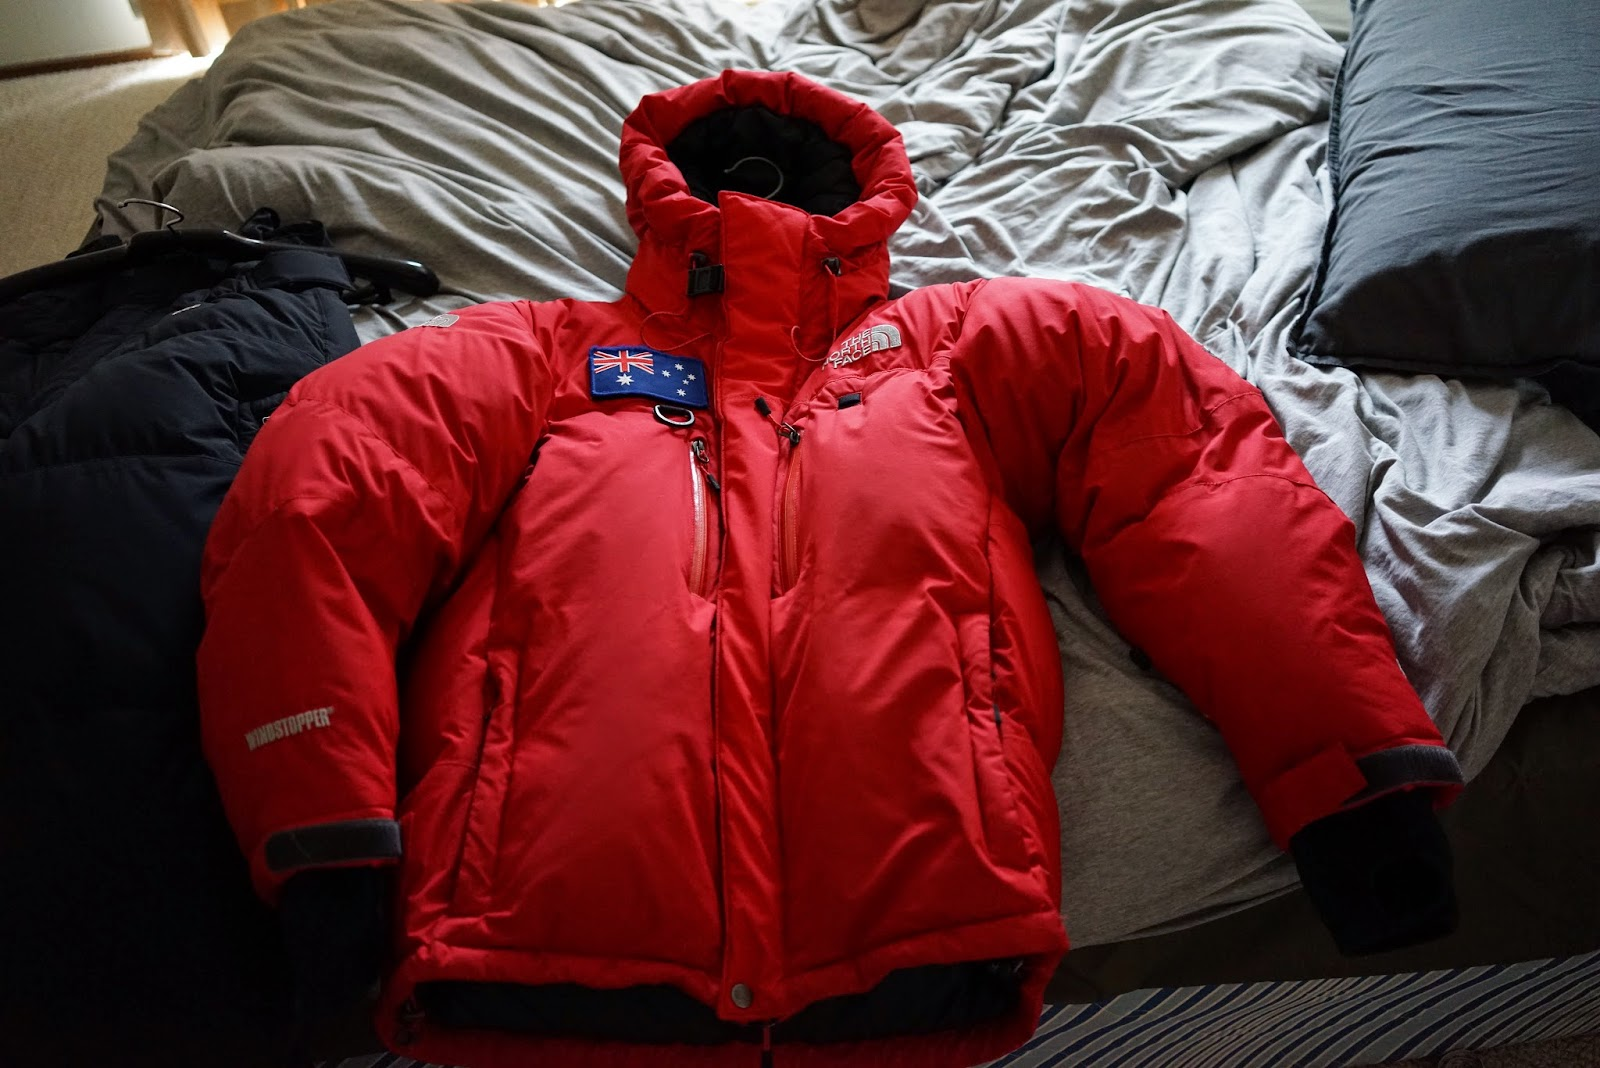 daef133f9c The North Face (TNF) Himalayan Parka (Windstopper version) (size Small)